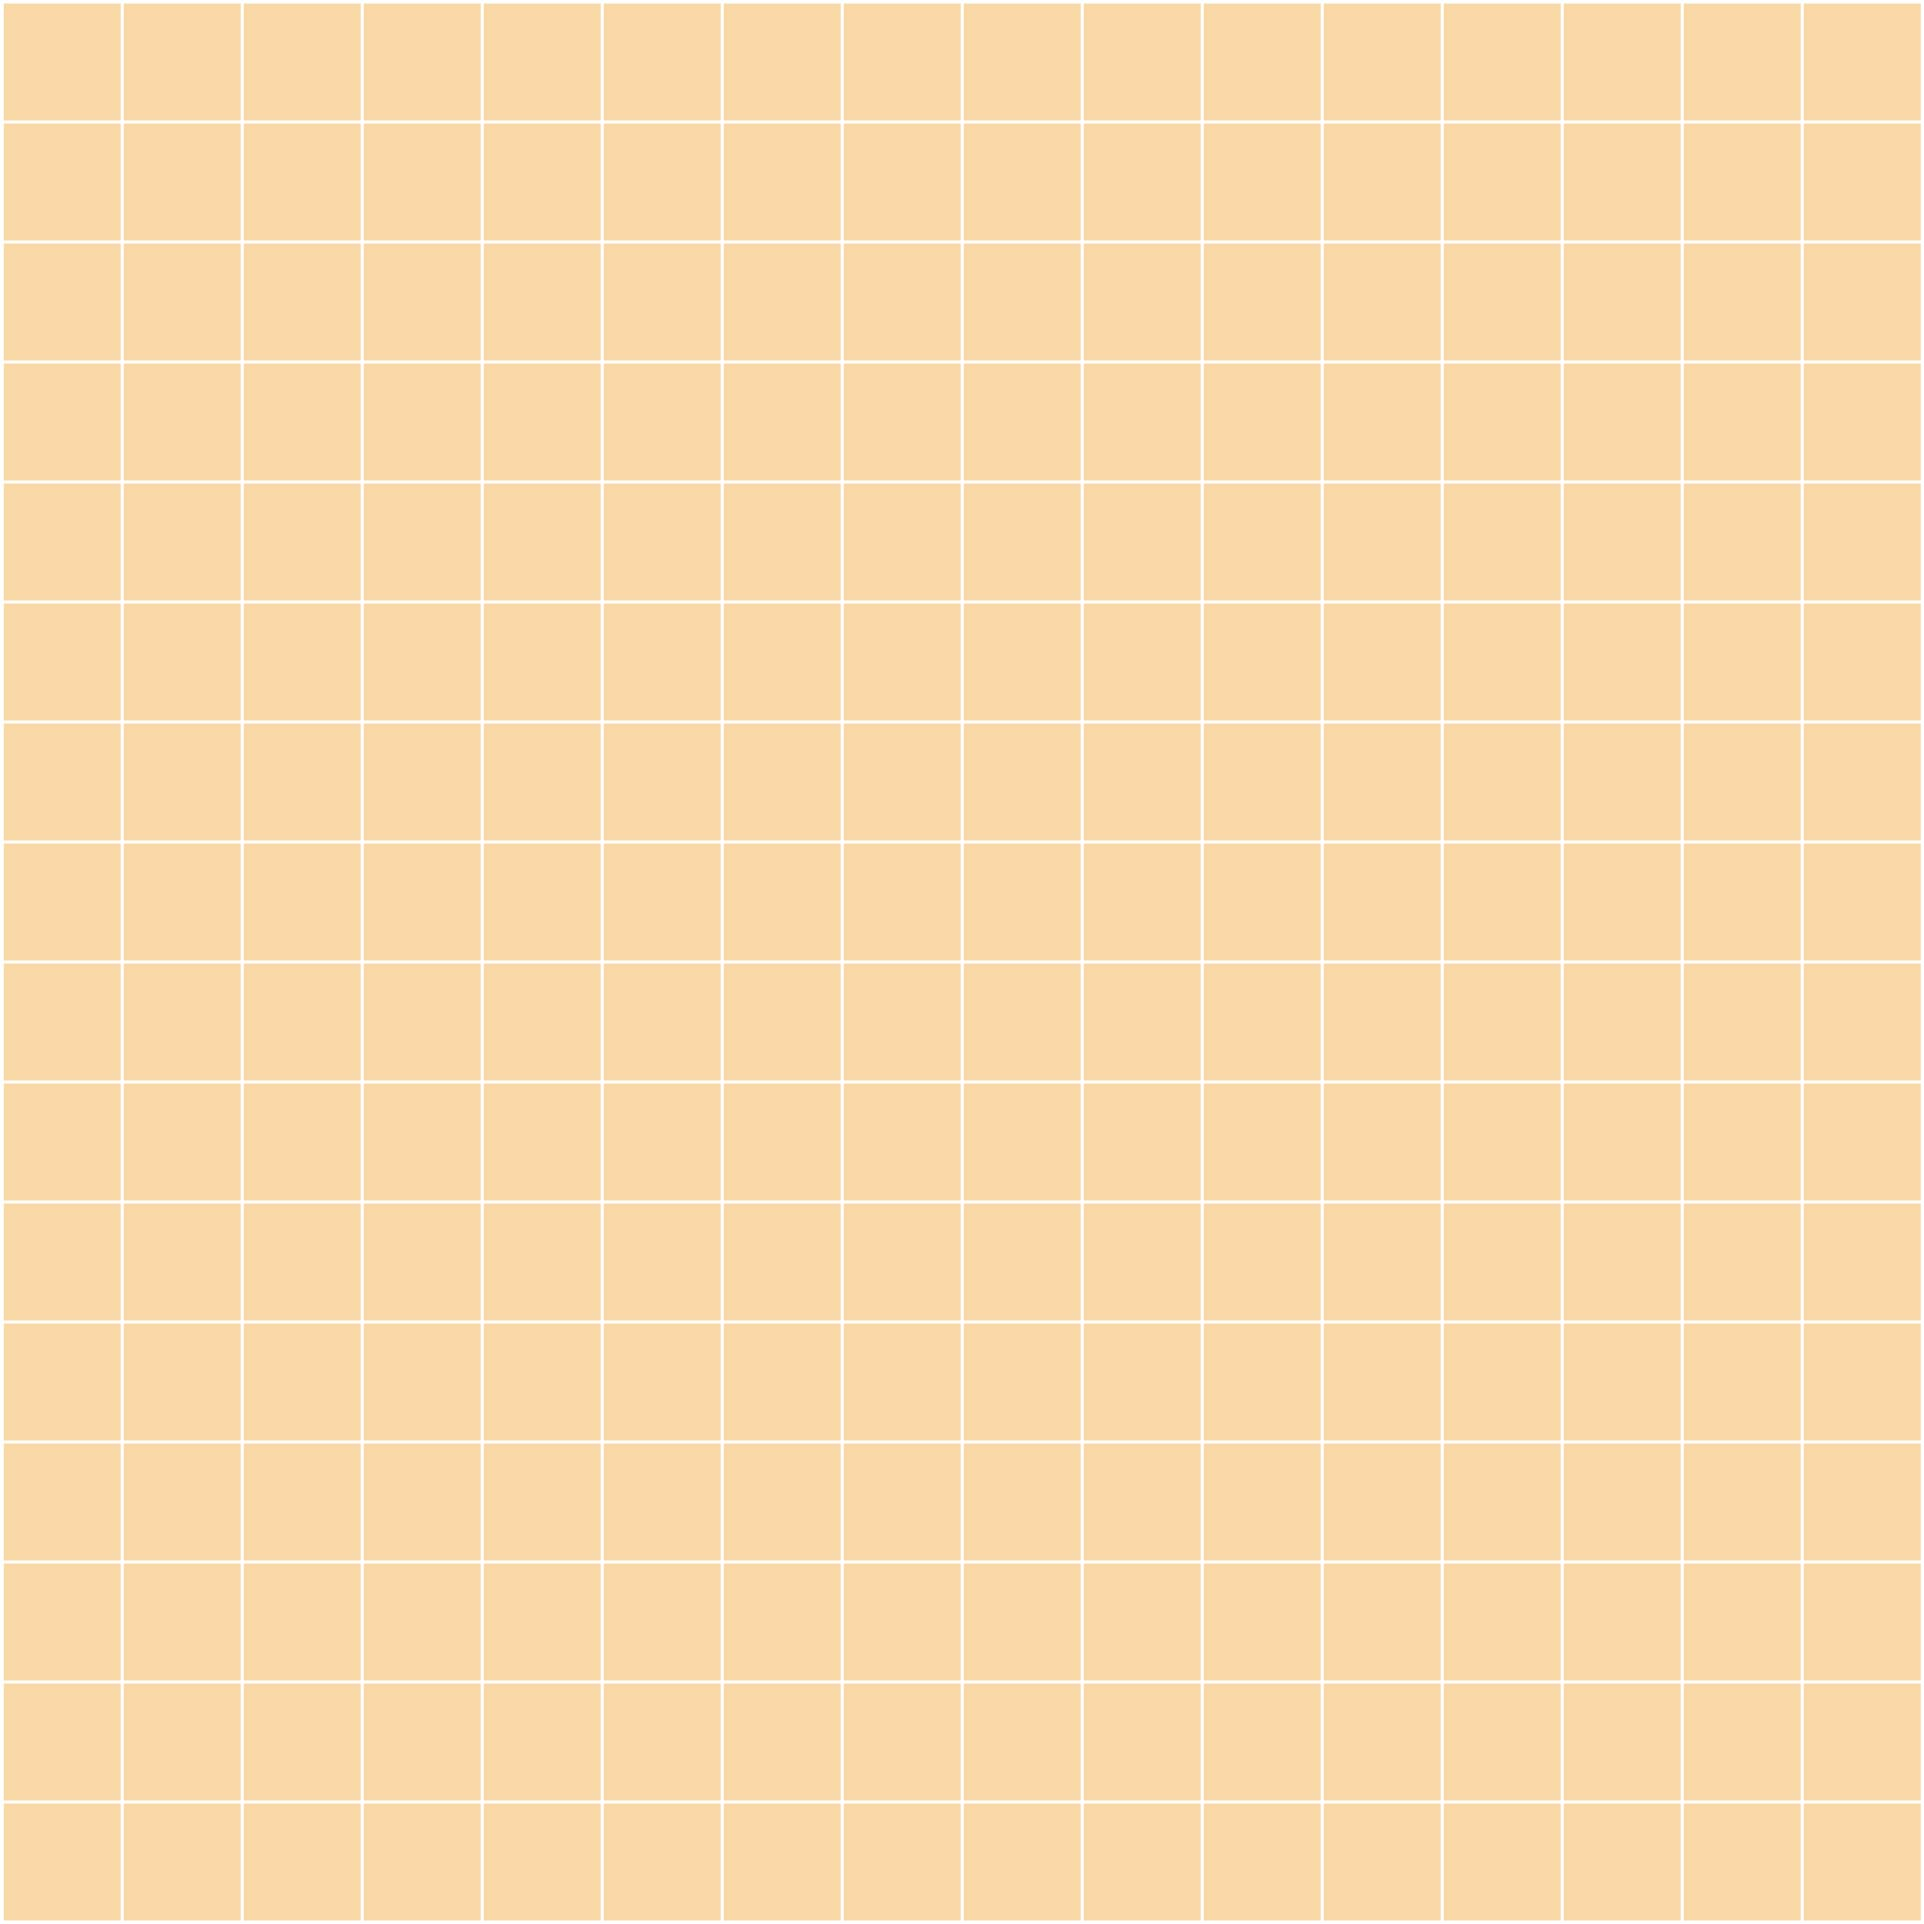 Printable Grid Graph Paper PDF